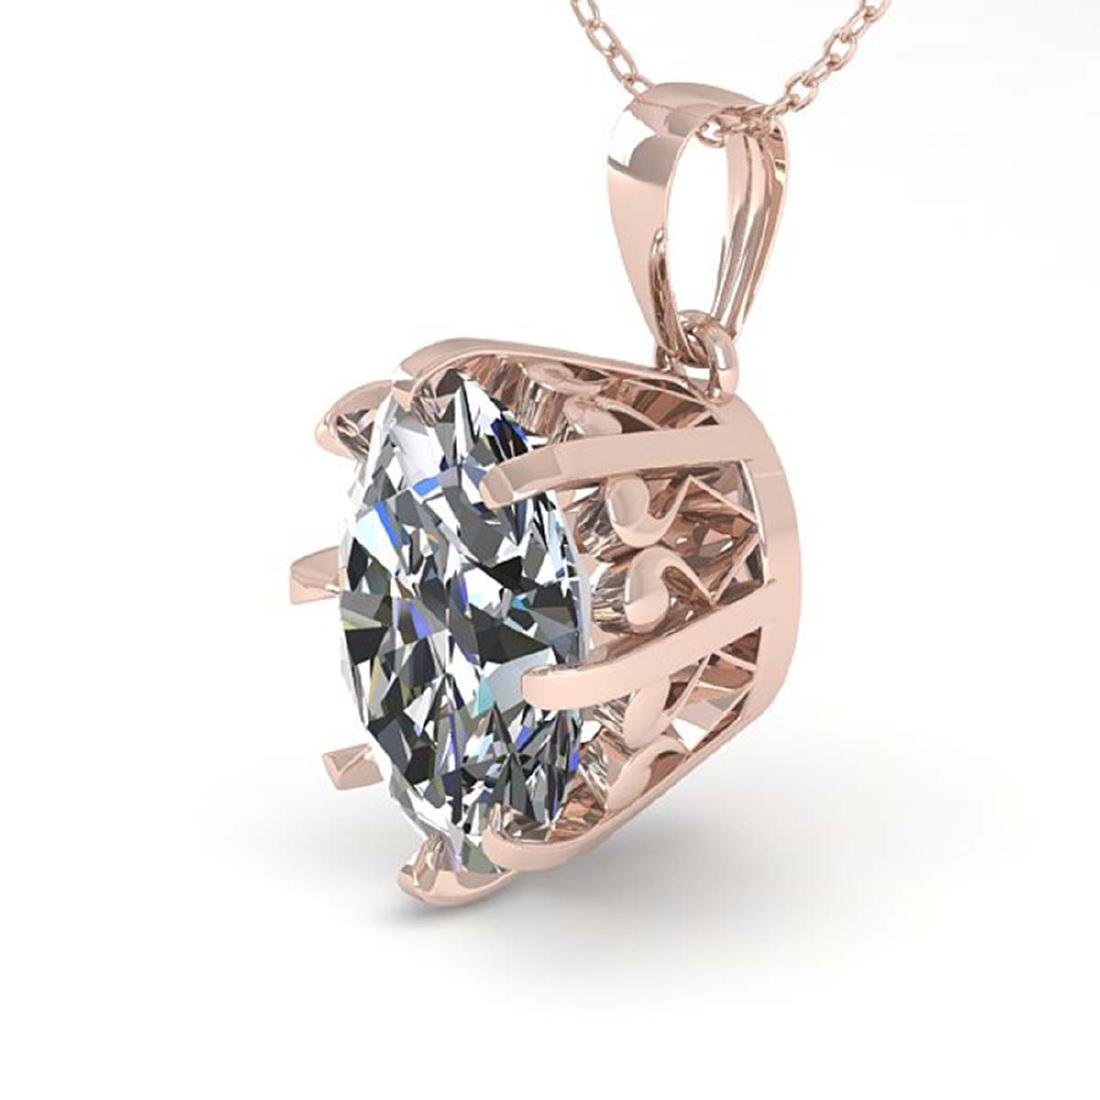 1 CTW VS/SI Oval Diamond Solitaire Necklace 14K Rose